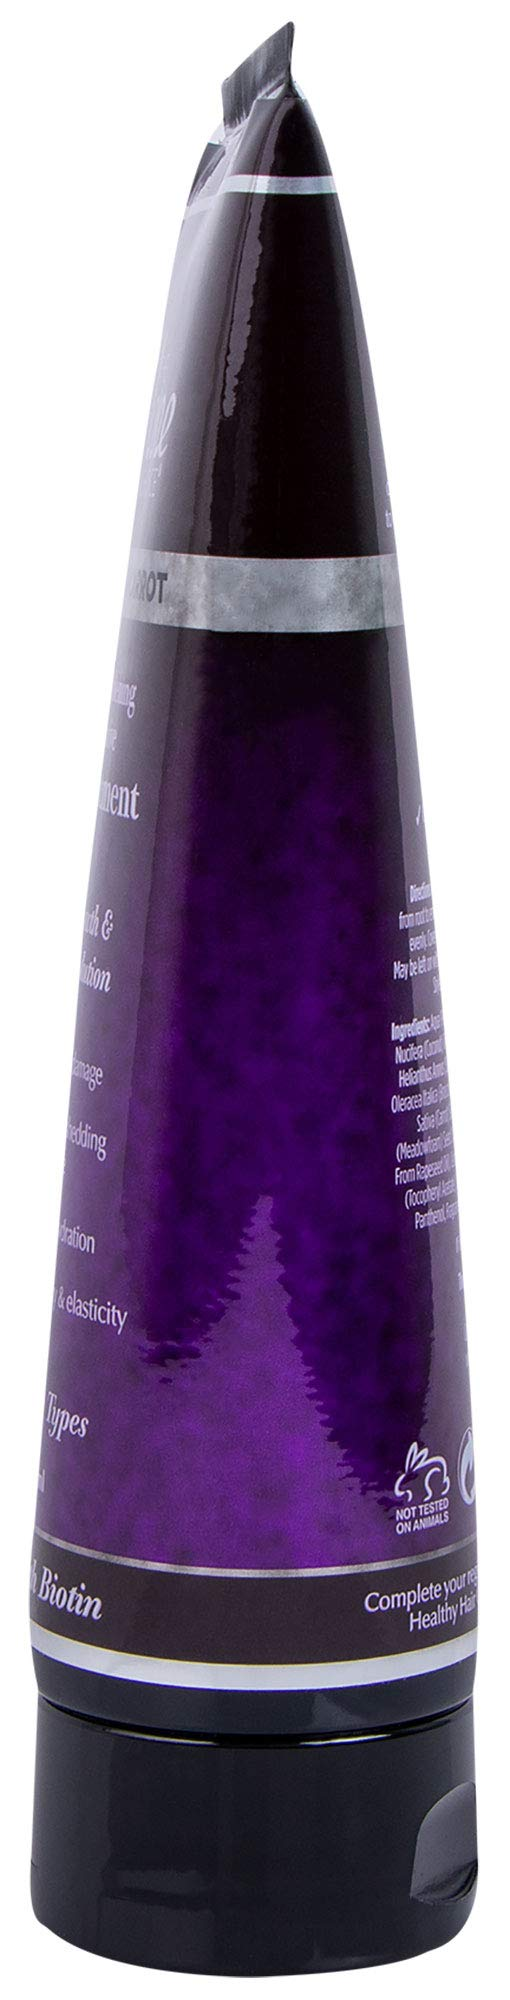 THE MANE CHOICE Green Tea & Carrot Deep Strengthening & Restorative Mask Treatment(8 Ounces / 230 Milliliters) - Hair Mask Infused With Vitamins, Nutrients & Biotin for Stronger Hair by The Mane Choice (Image #3)